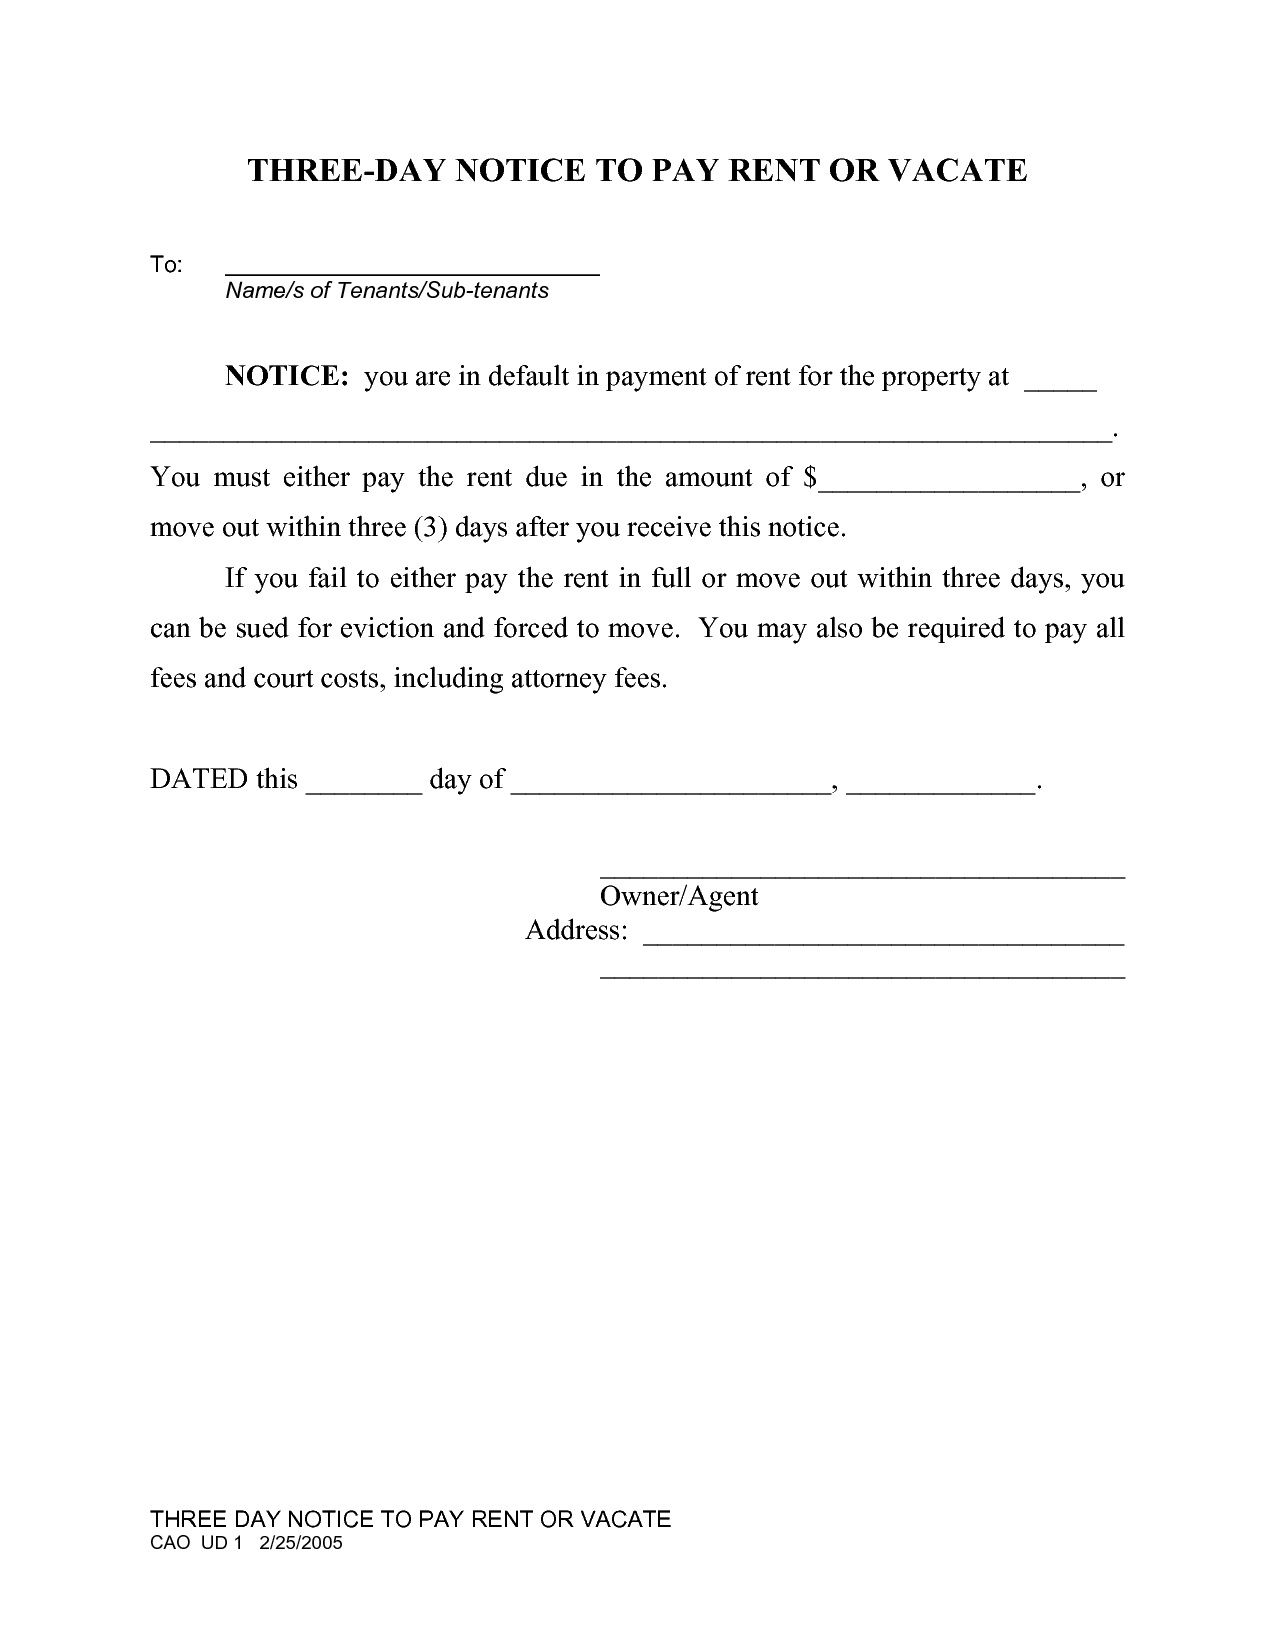 005 Rare 3 Day Eviction Notice Template High Resolution  Form Pdf FloridaFull